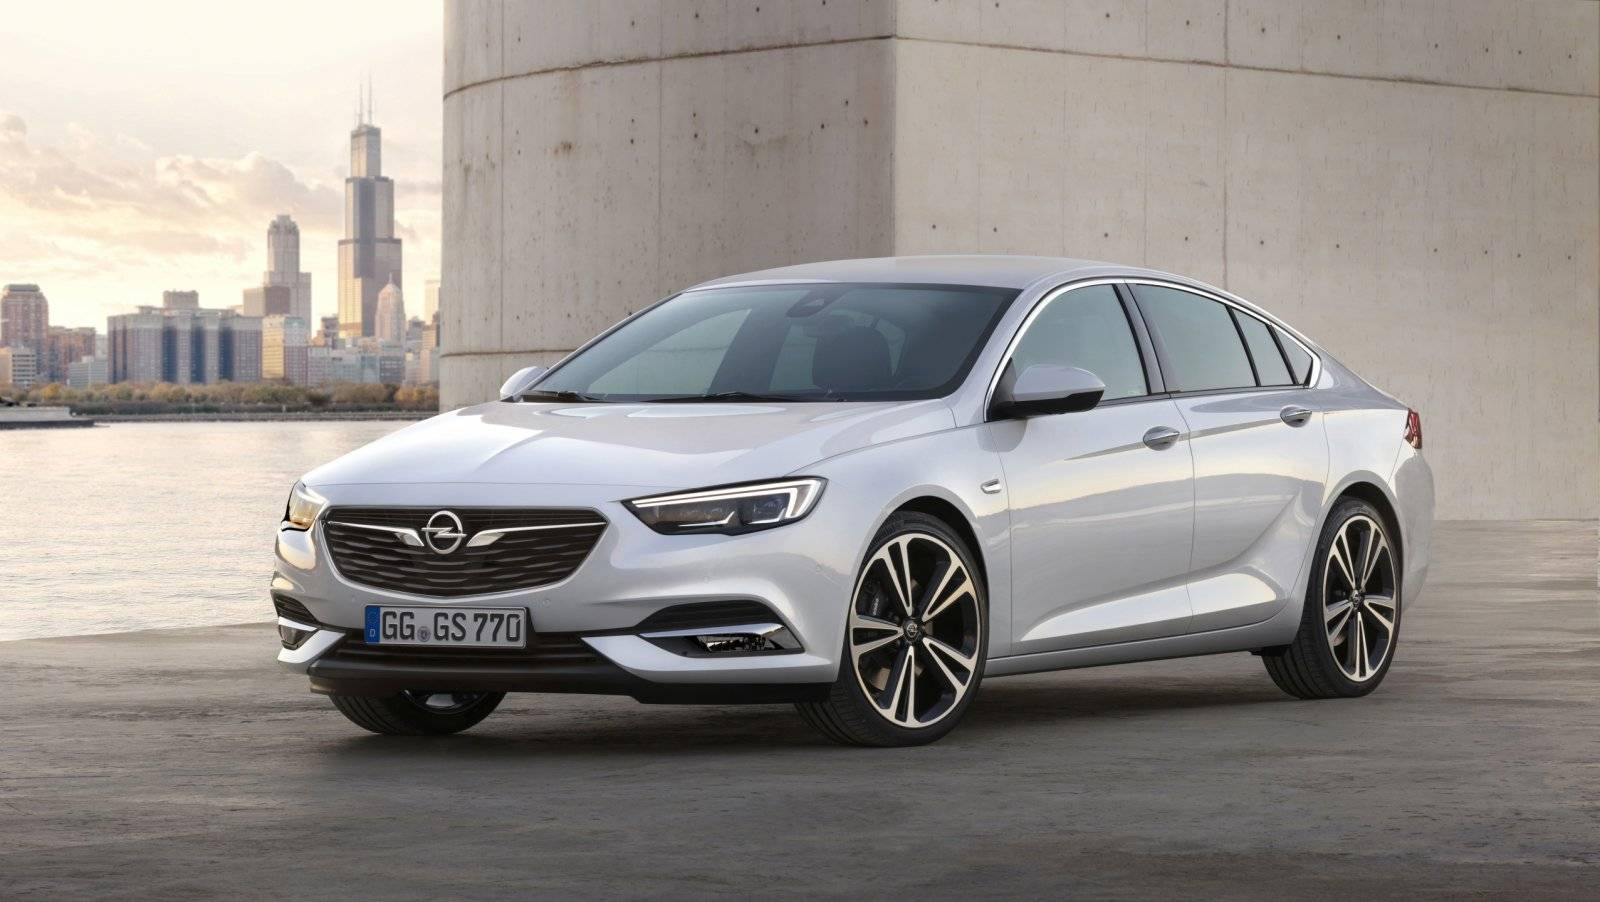 Image result for opel insignia